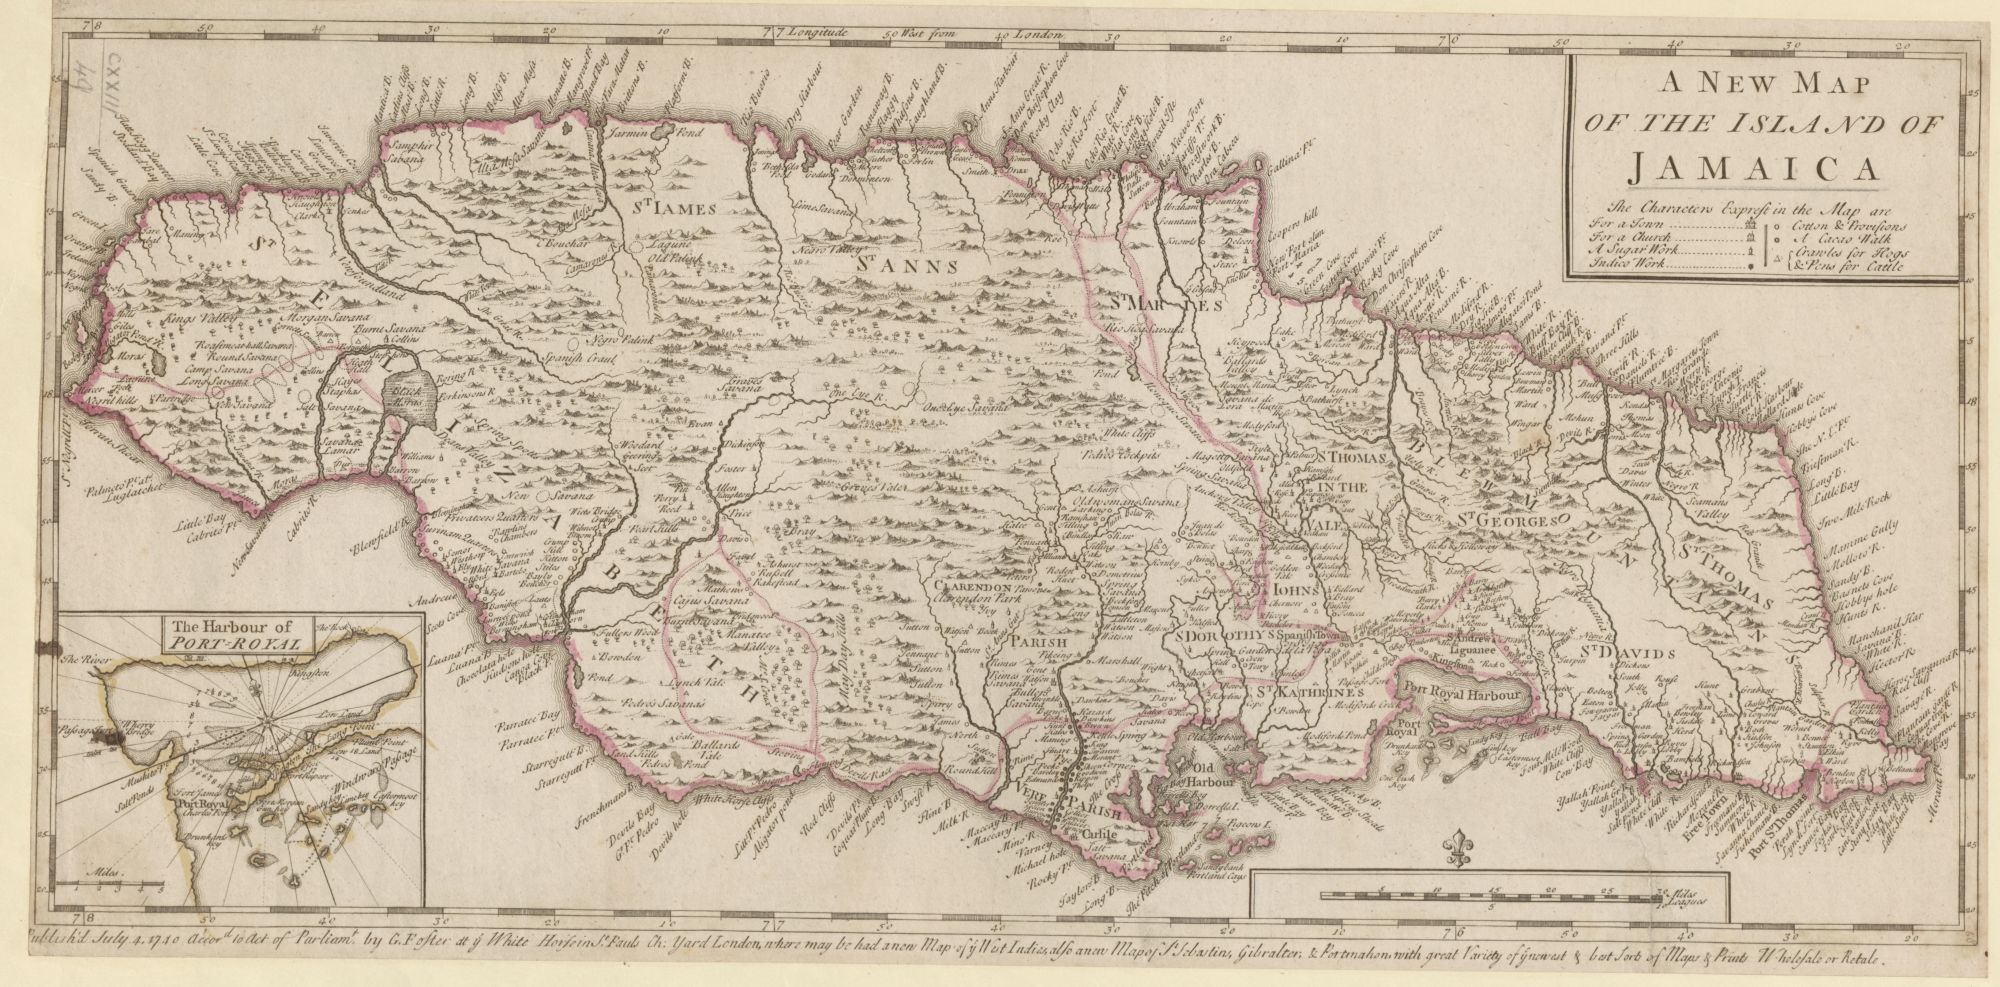 A new map of the island of Jamaica | British Library - Picturing ...